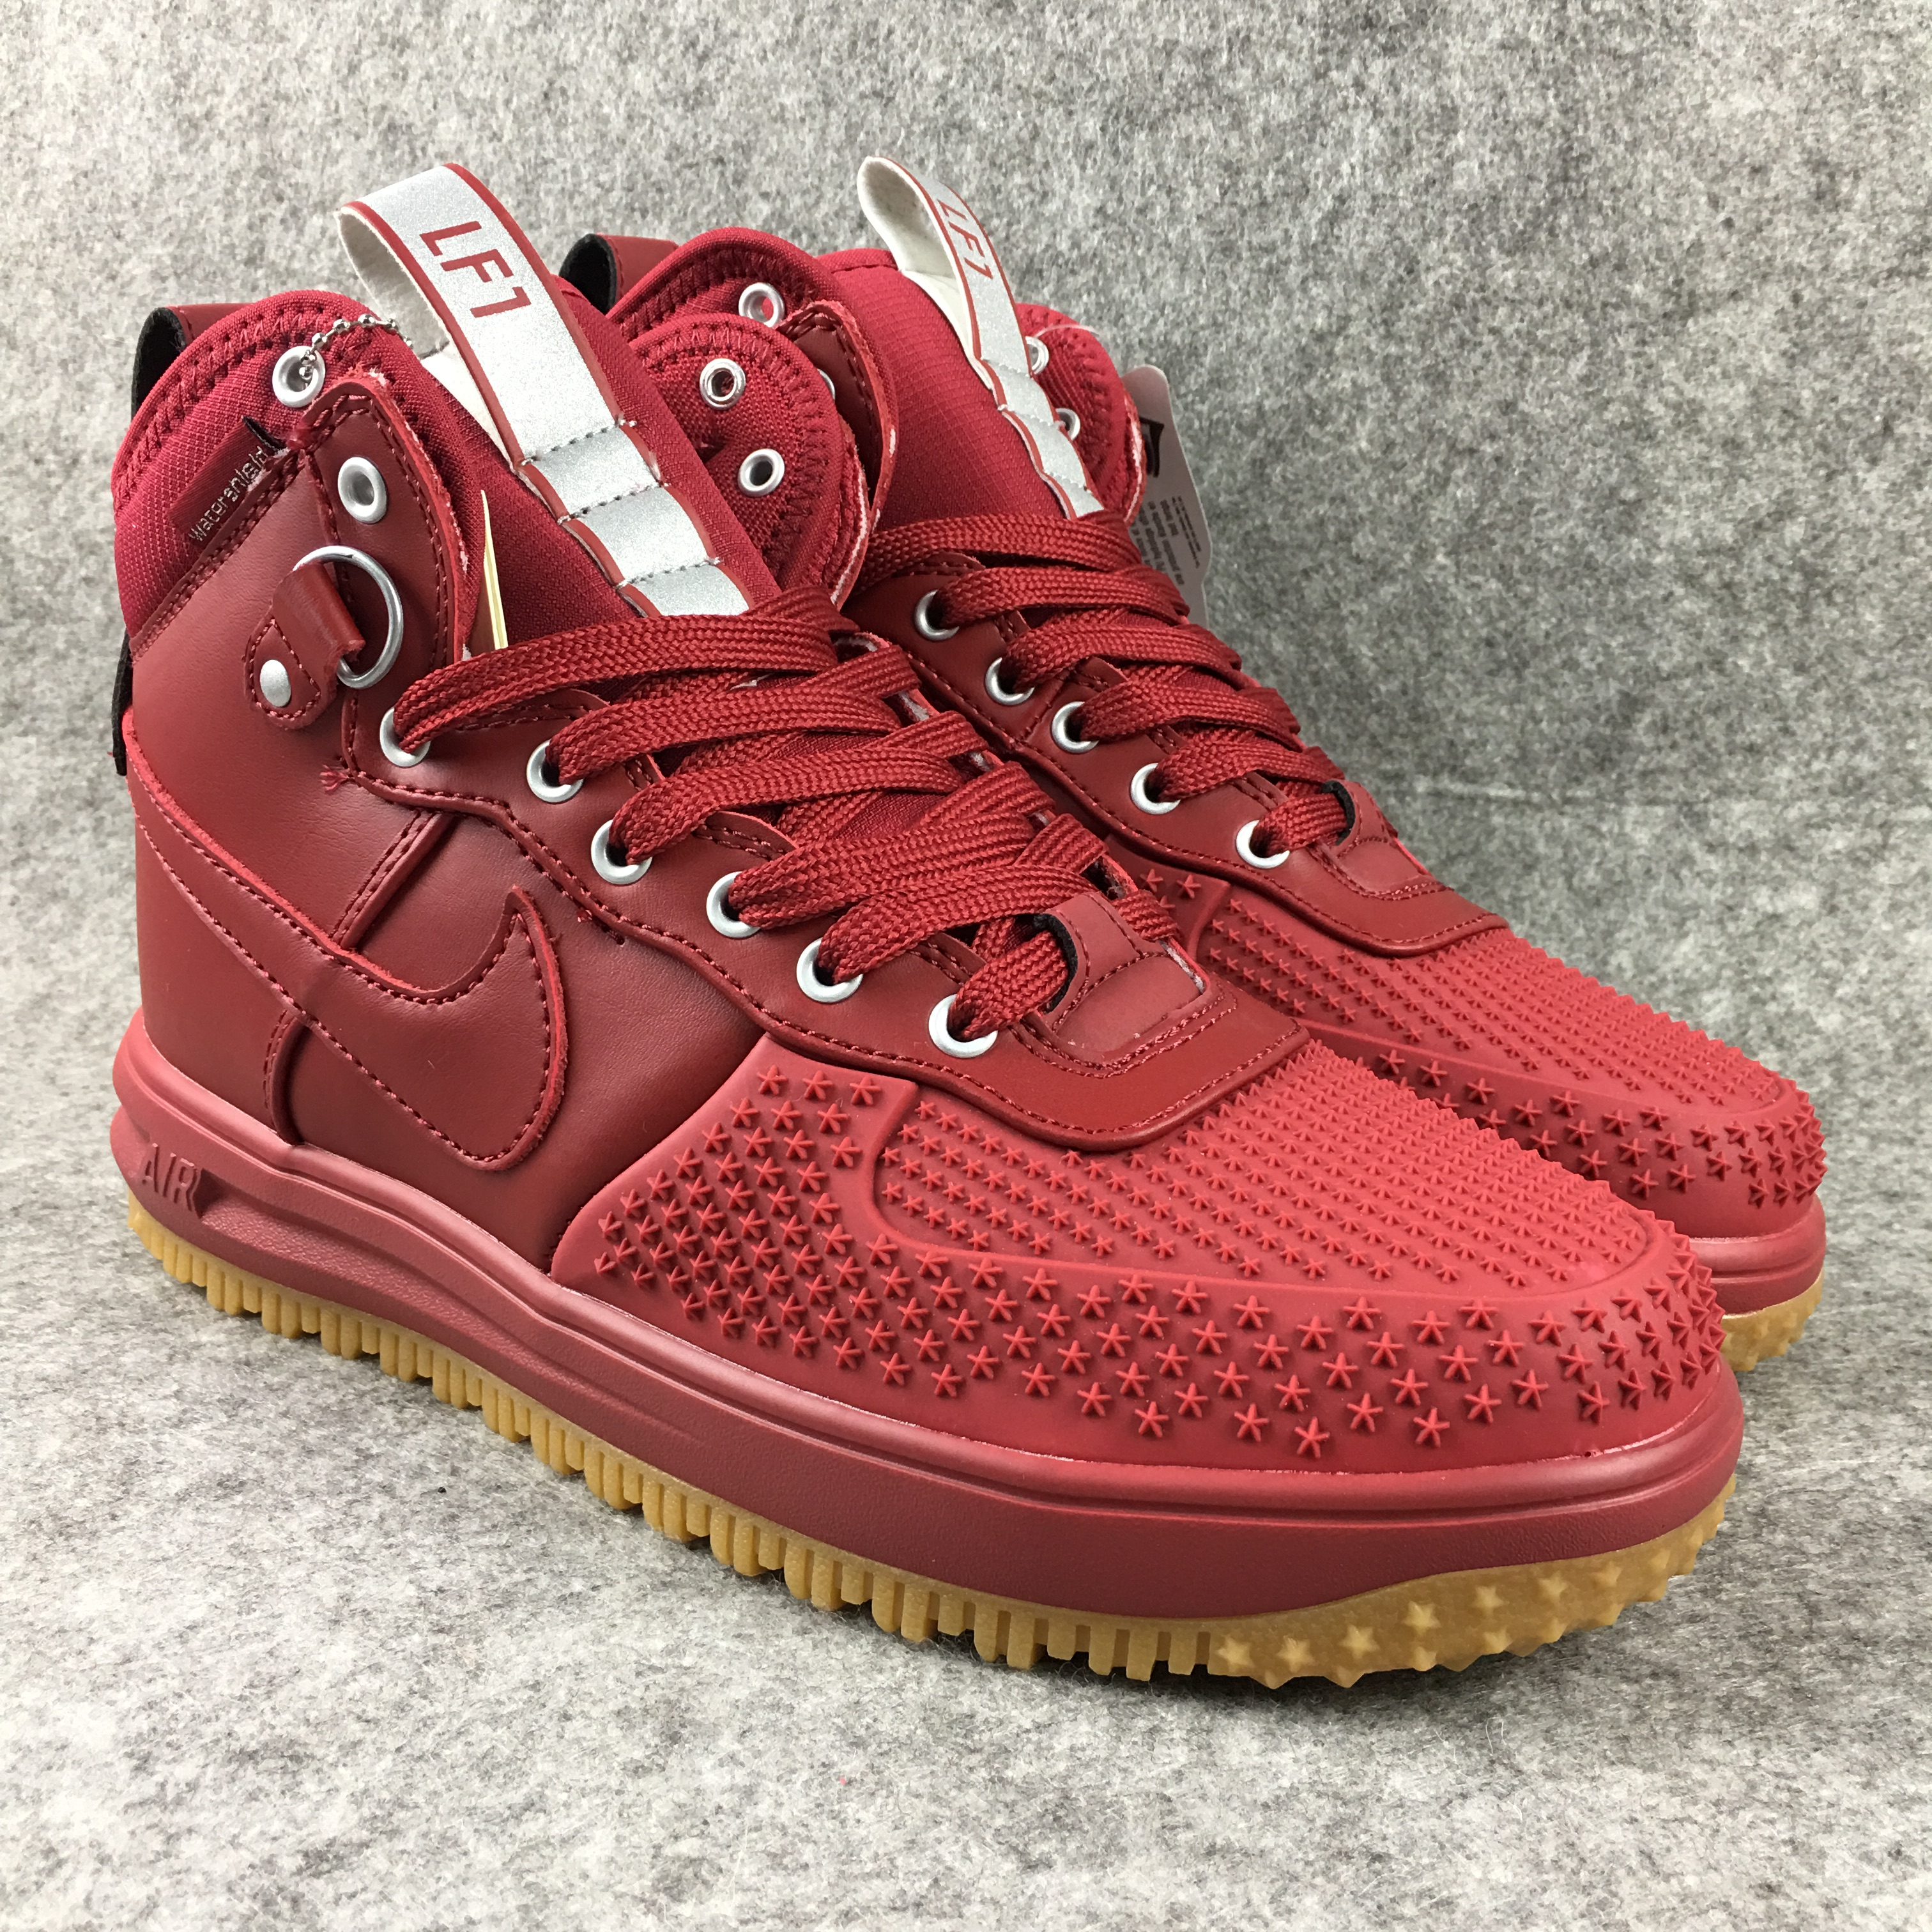 New Nike Lunar Force 1 High All Red Shoes